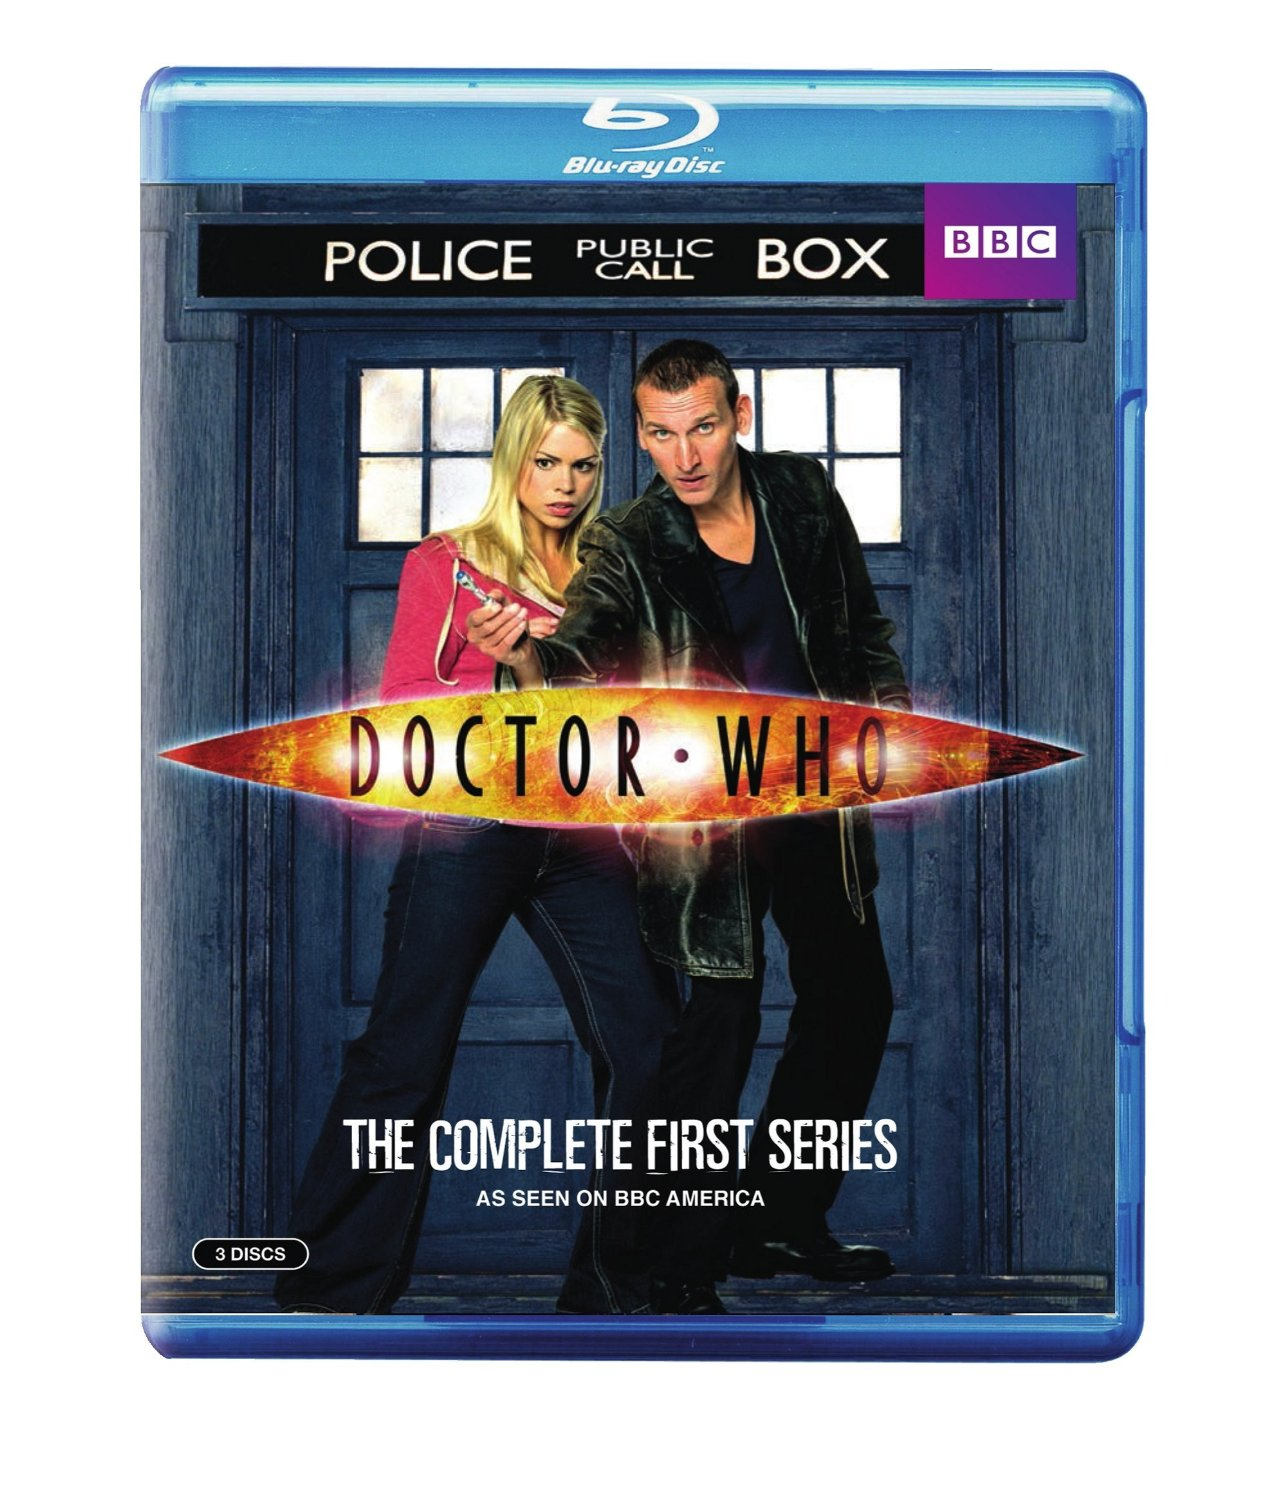 Blu-ray: Doctor Who Series 1 (One)